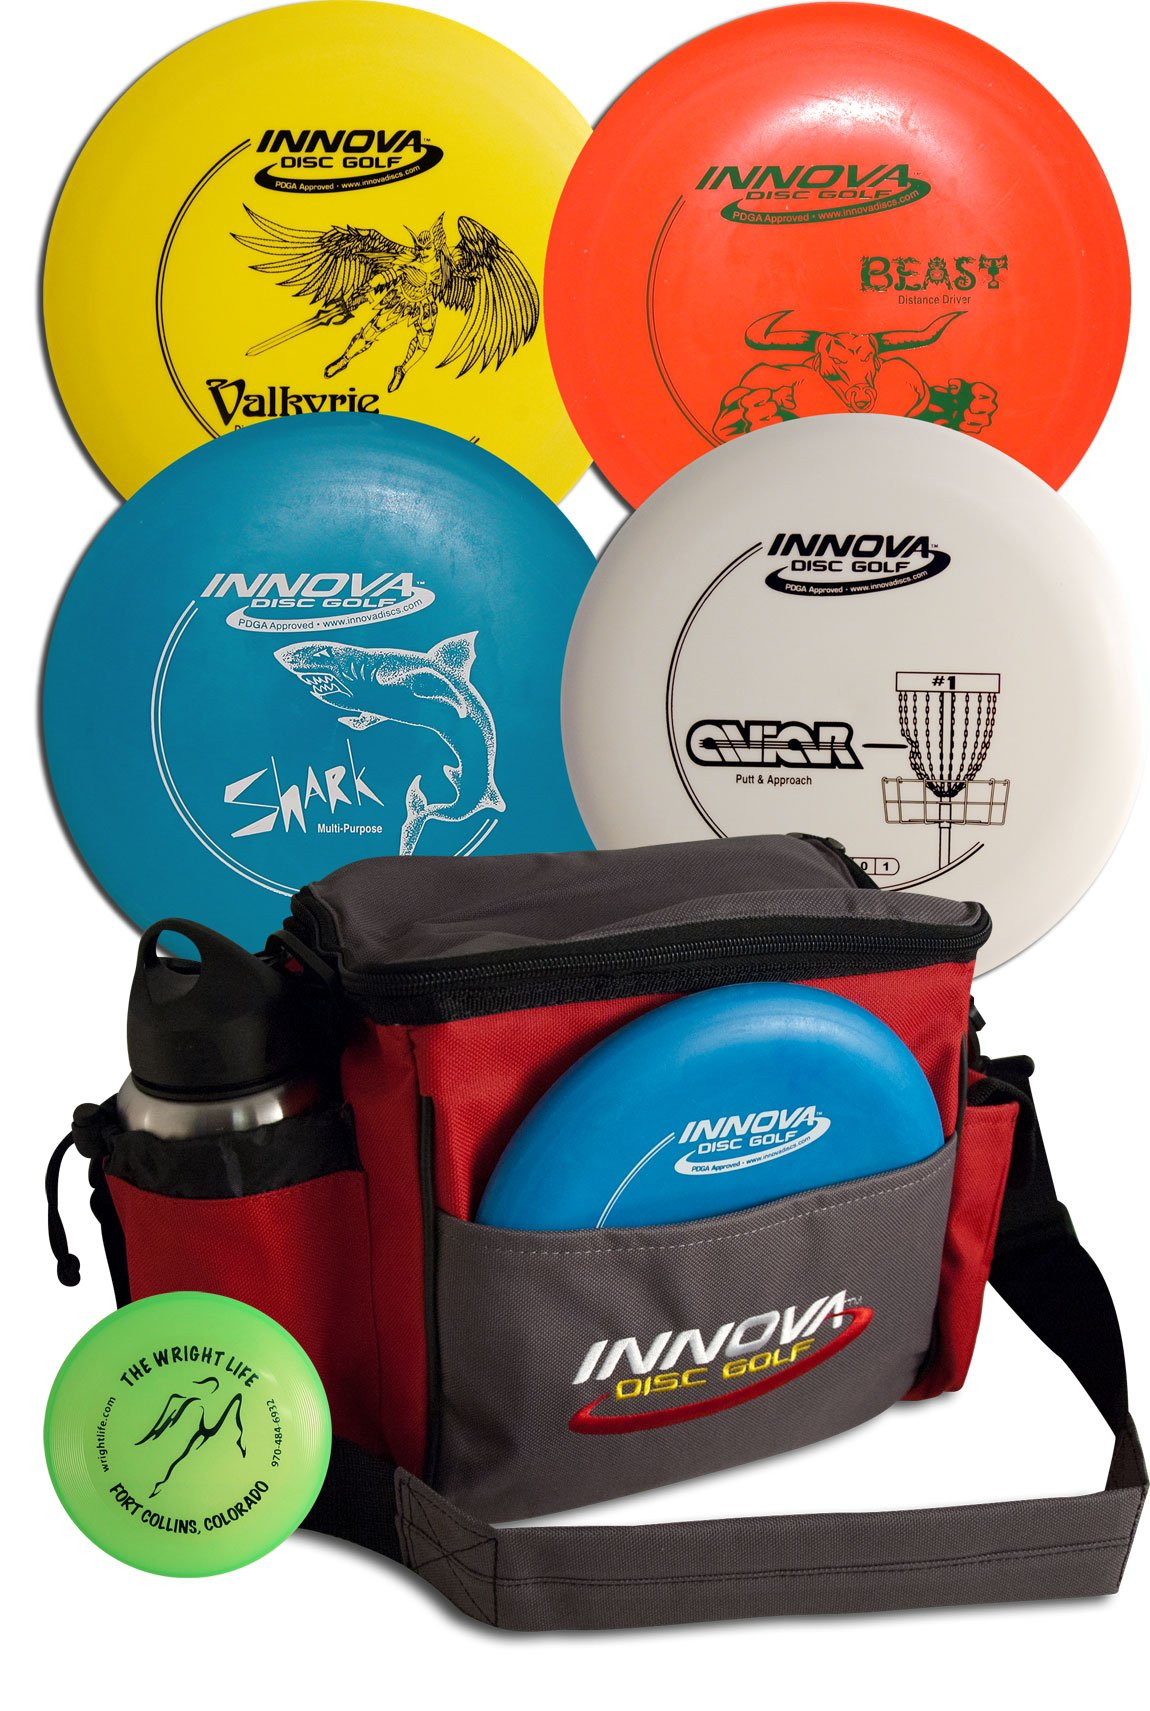 Innova Disc Golf Standard Set by Innova